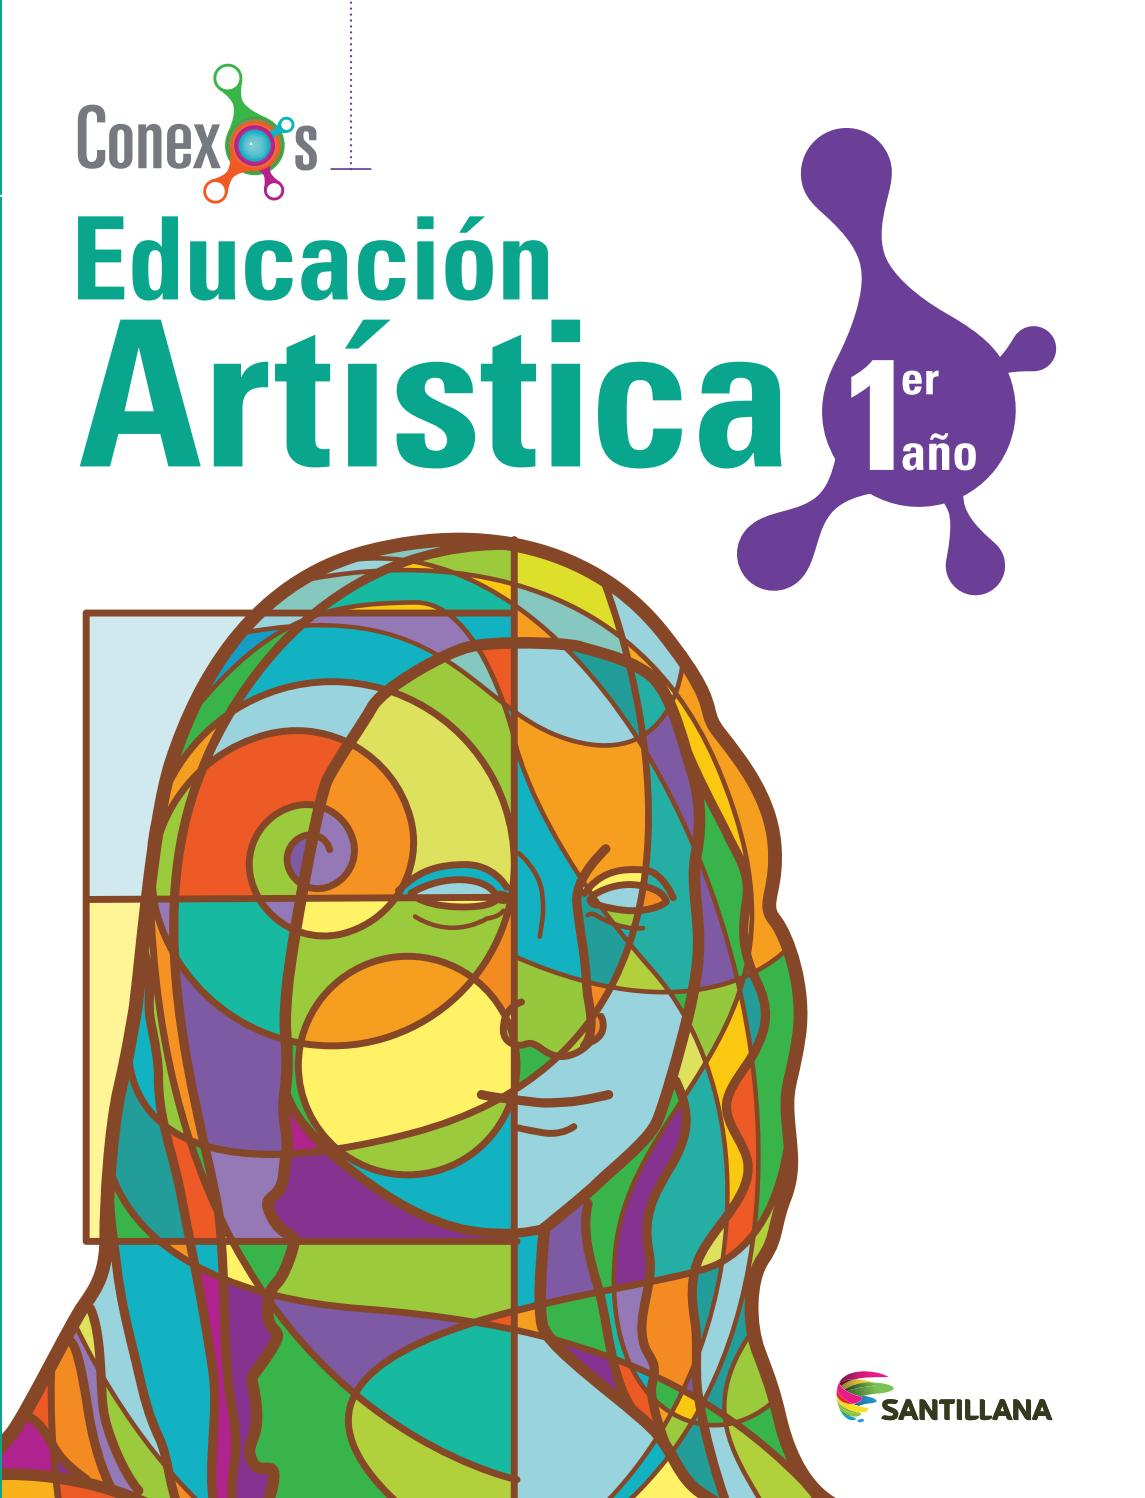 Arte Optico Definicion Breve Educación Artística 2do Año By Santillana Venezuela Issuu